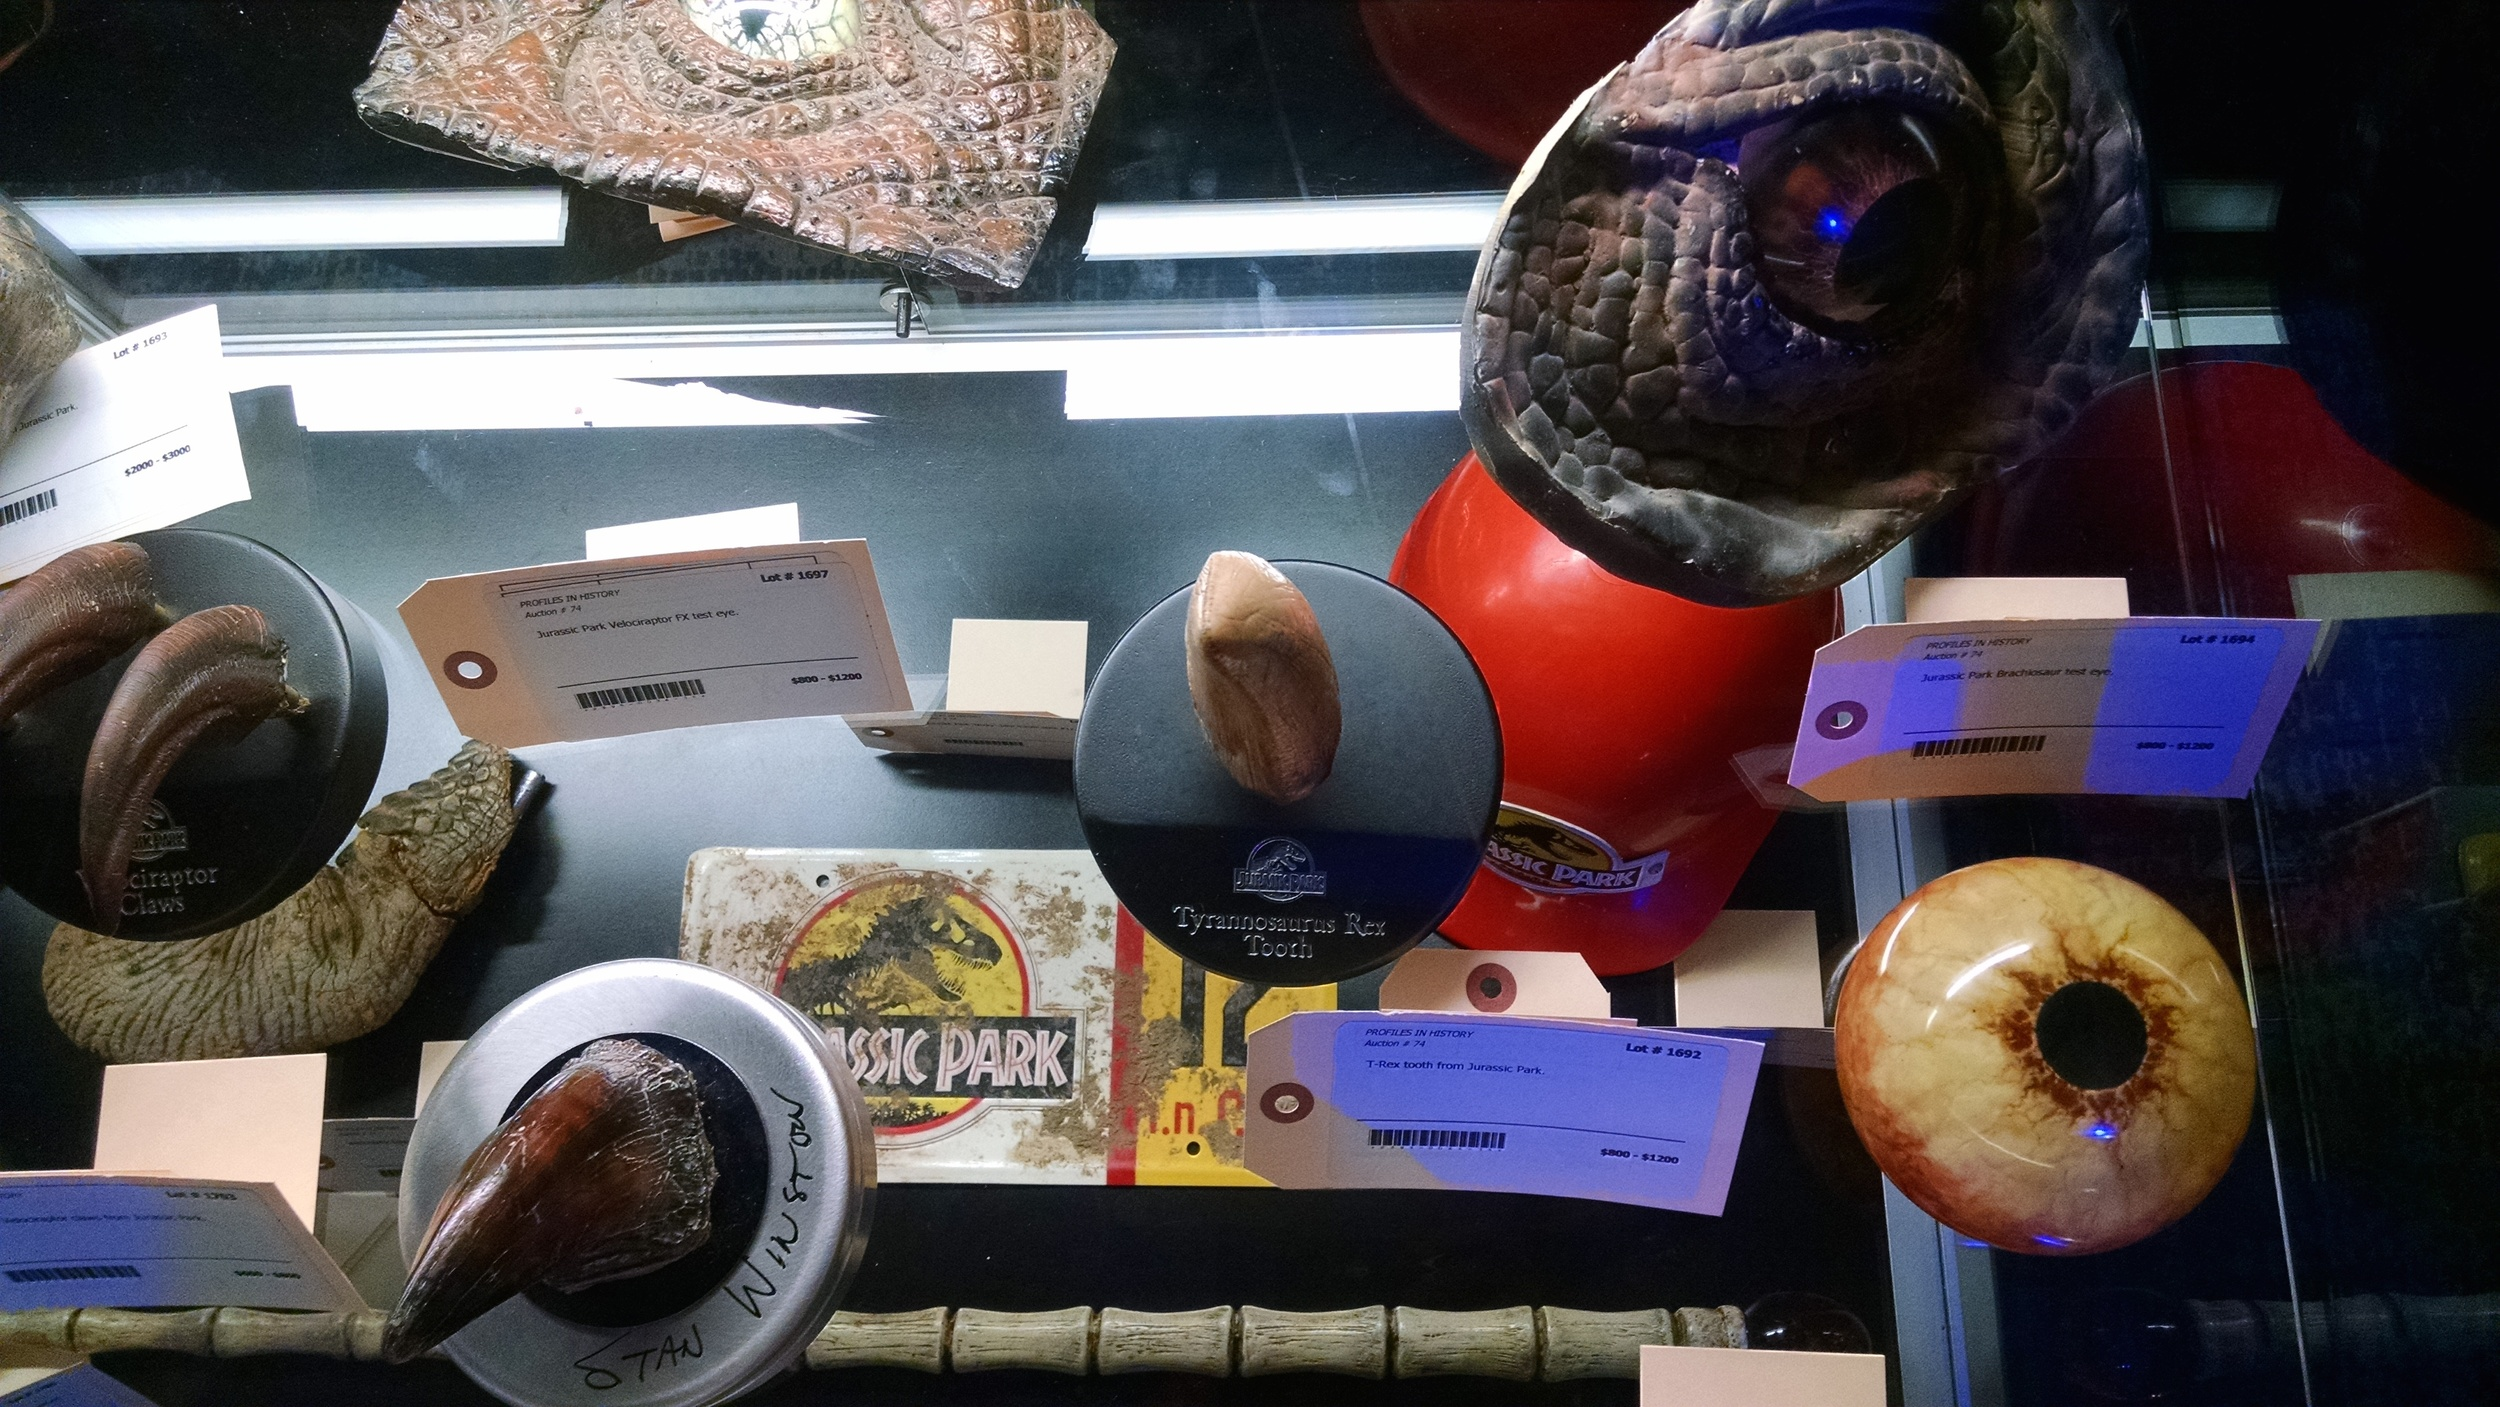 Screen used Jurassic Park special effects props were on display